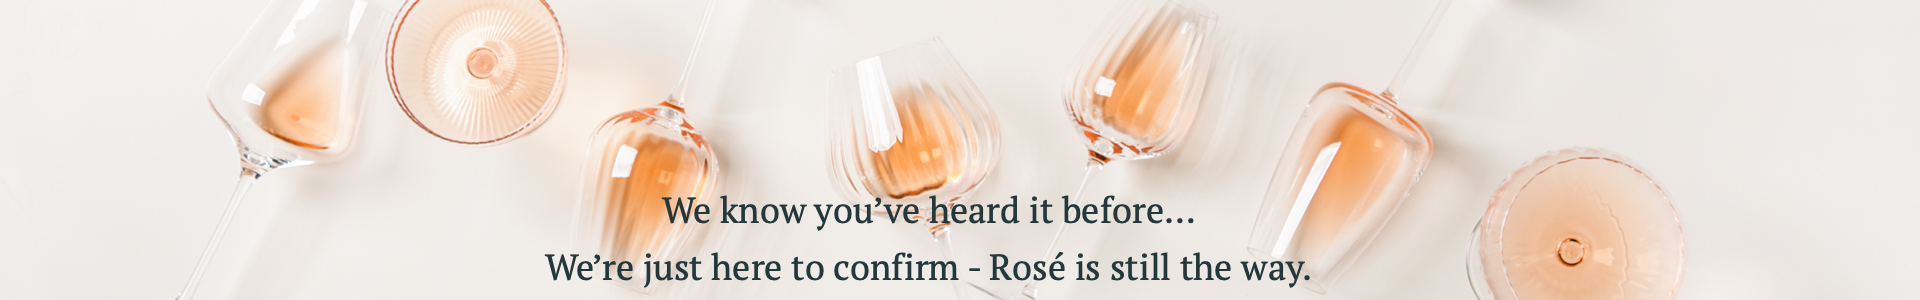 We know you've heard it before...we're just here to confirm: Rosé is still the way.